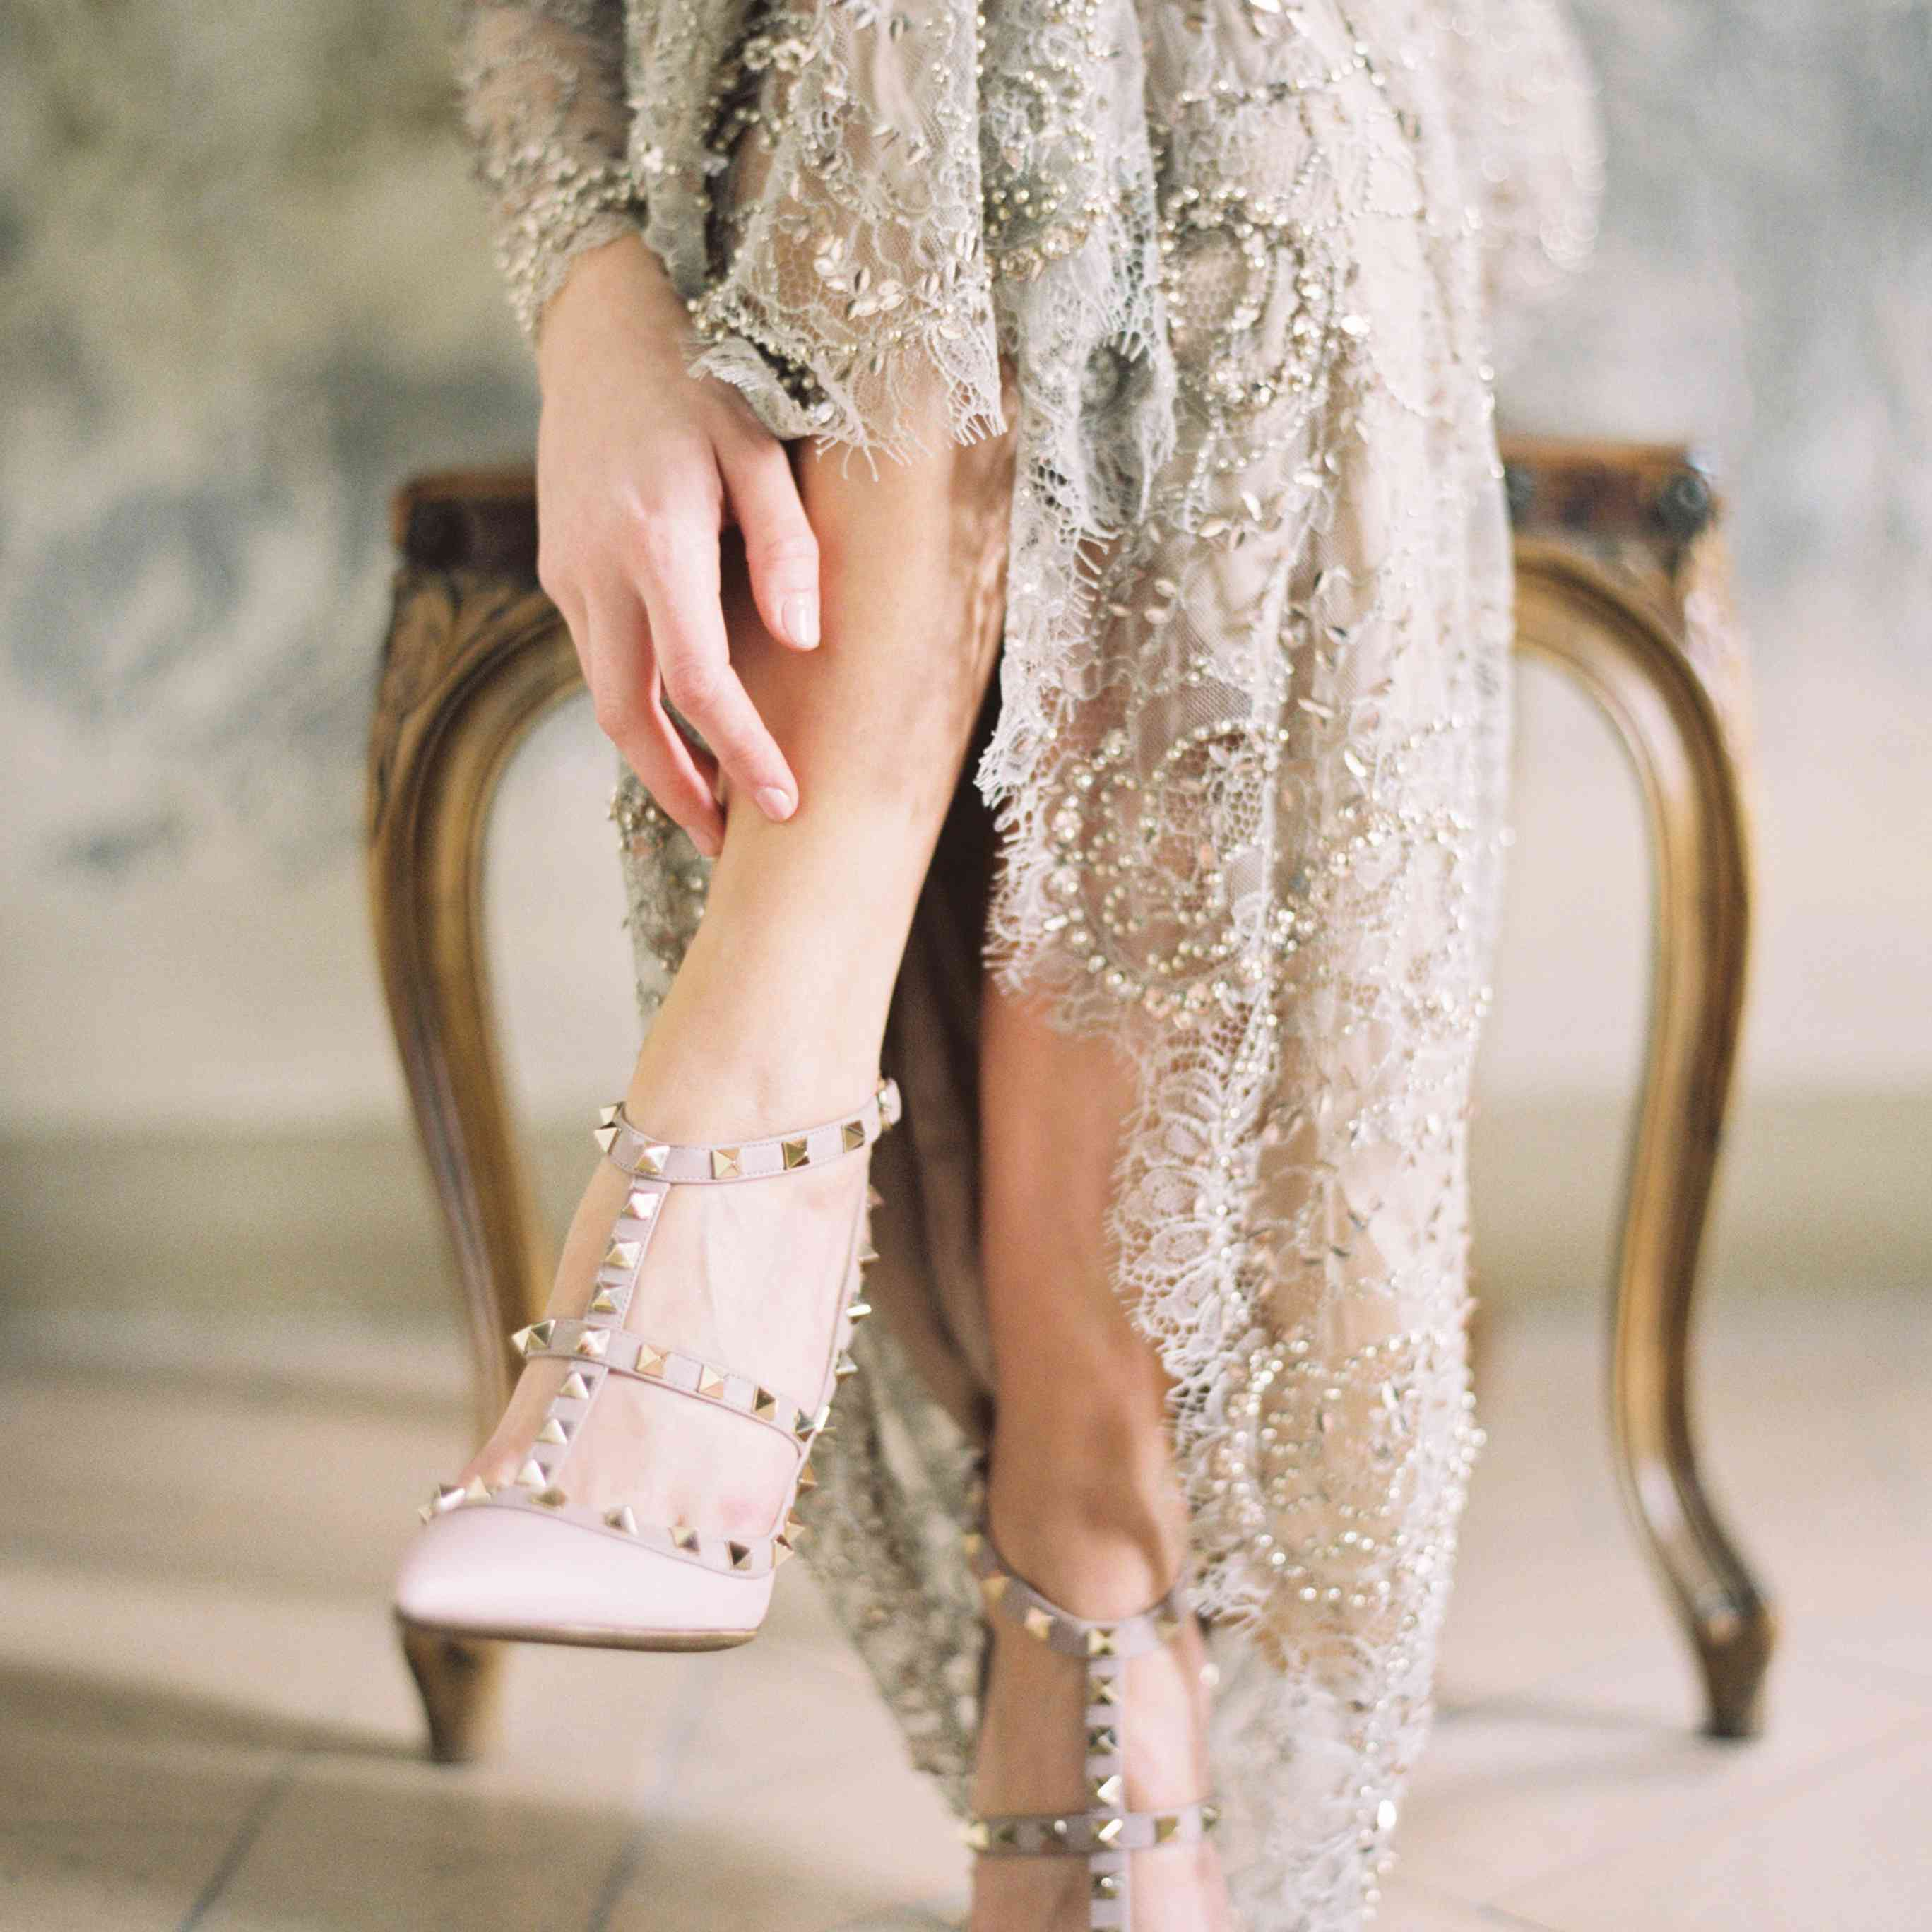 A detail shot captures a bride's Valentino heels and bottom of her wedding dress